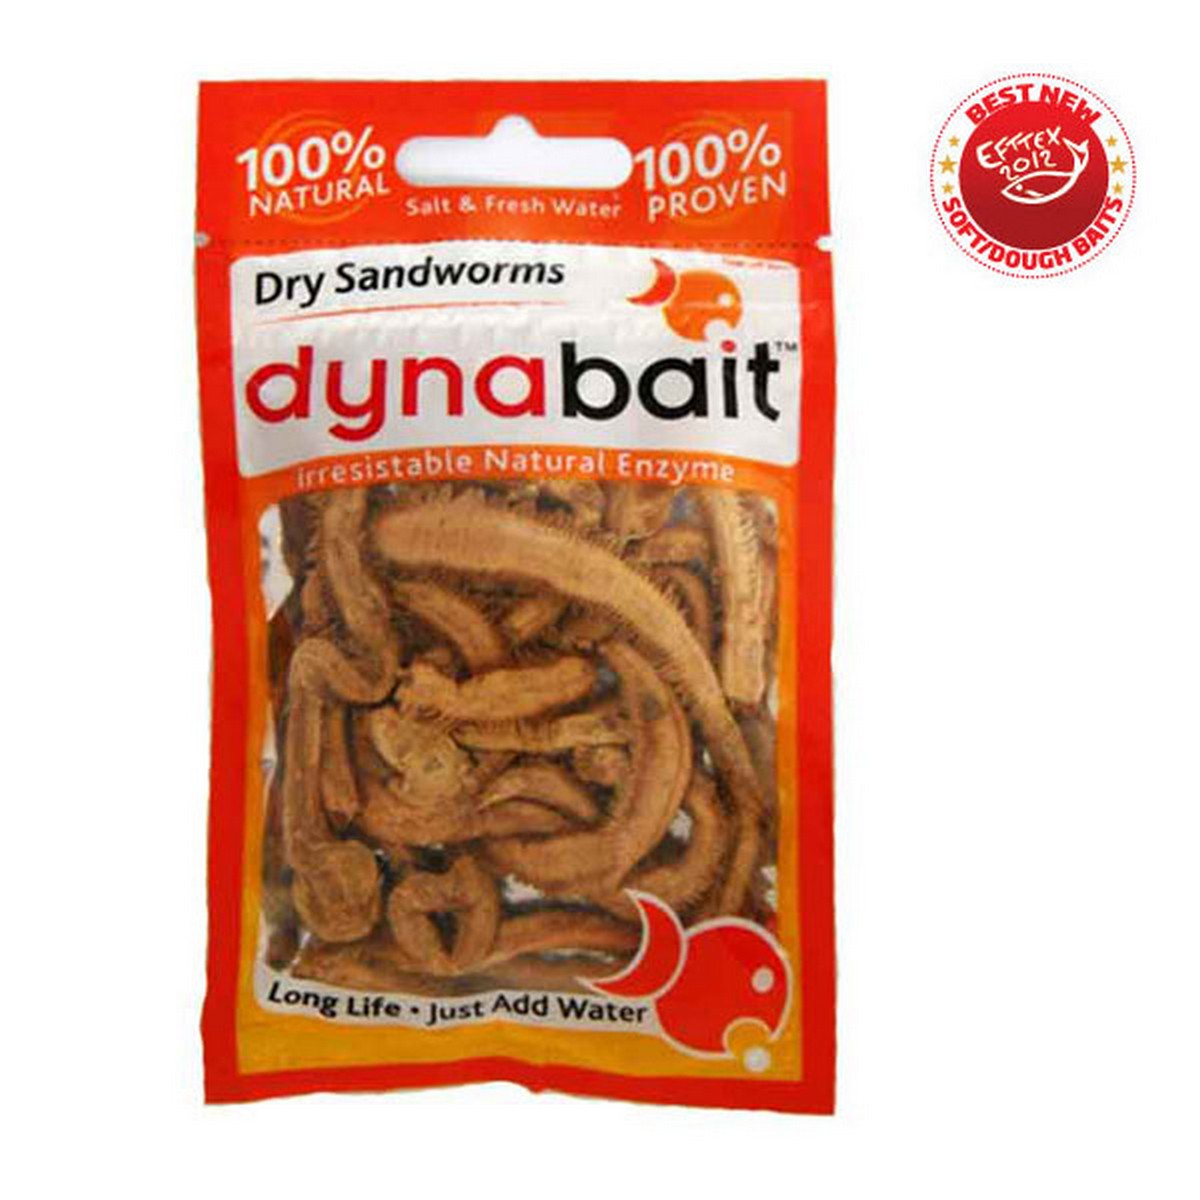 Dynabait Freeze Dried Sand Worms - изсушени червеи